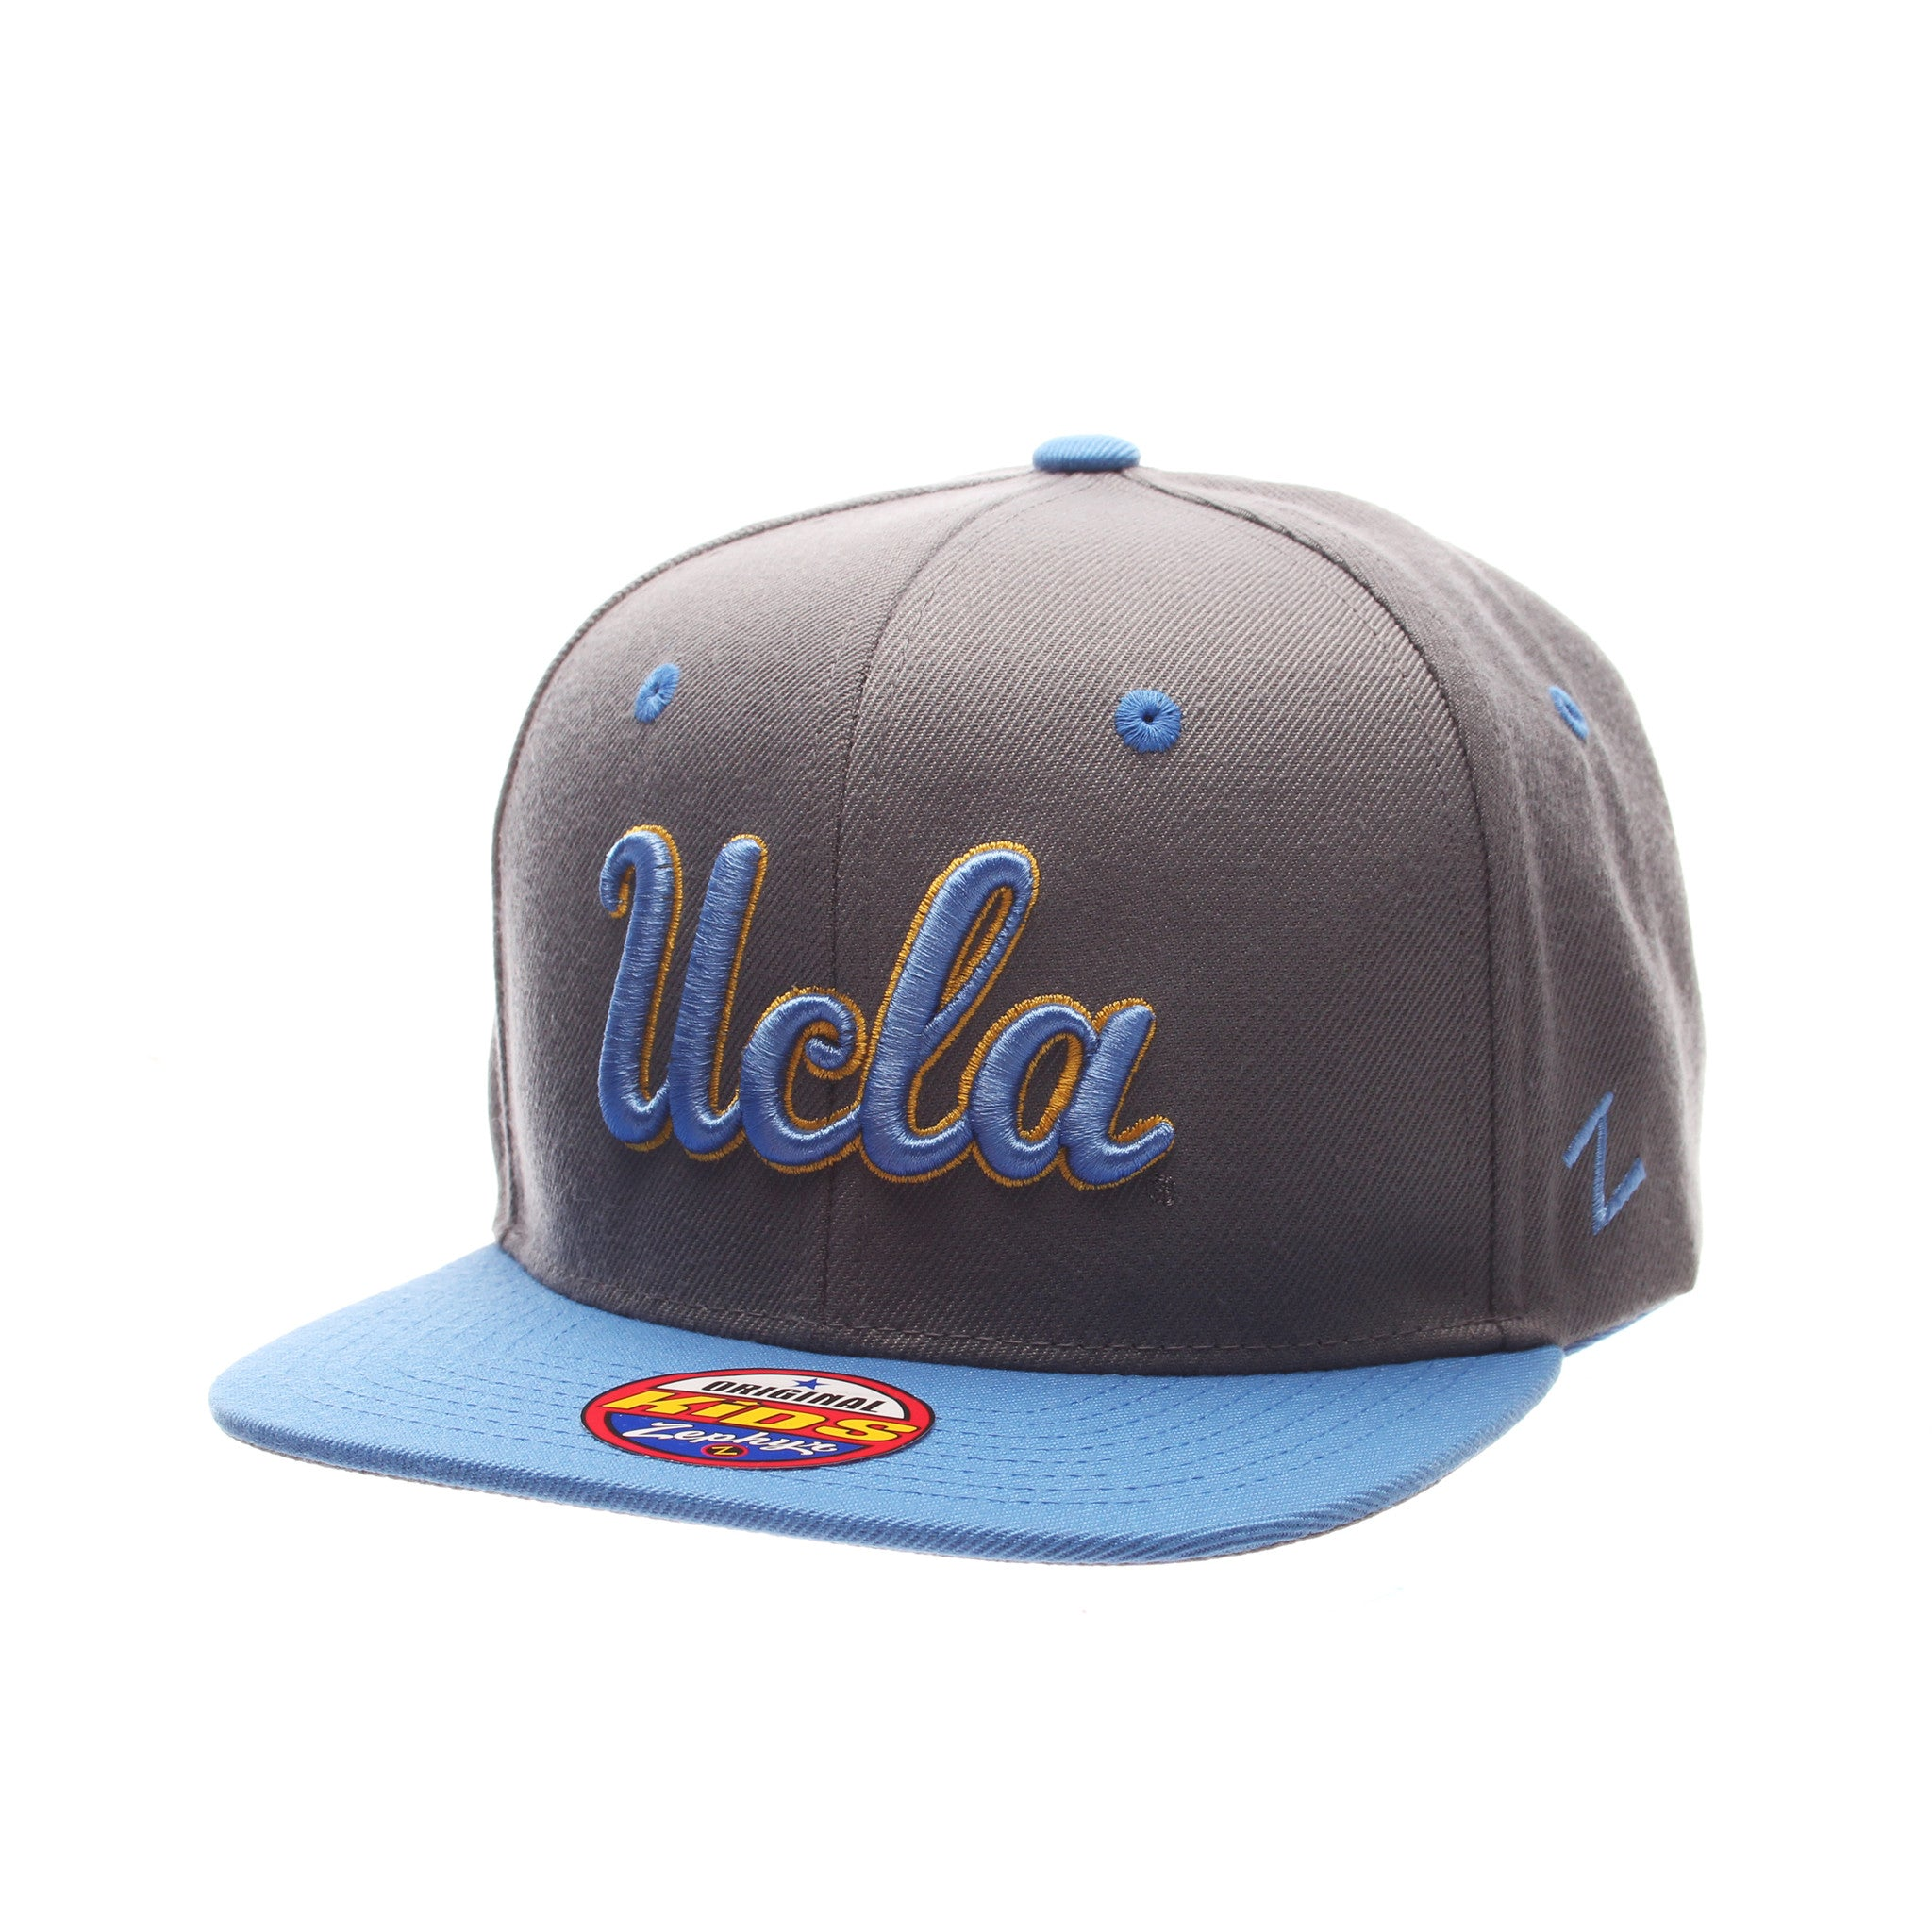 California (Los Angeles) Z11 Slate Youth 32/5 Youth (UCLA) Gray Medium Zwool Adjustable hats by Zephyr